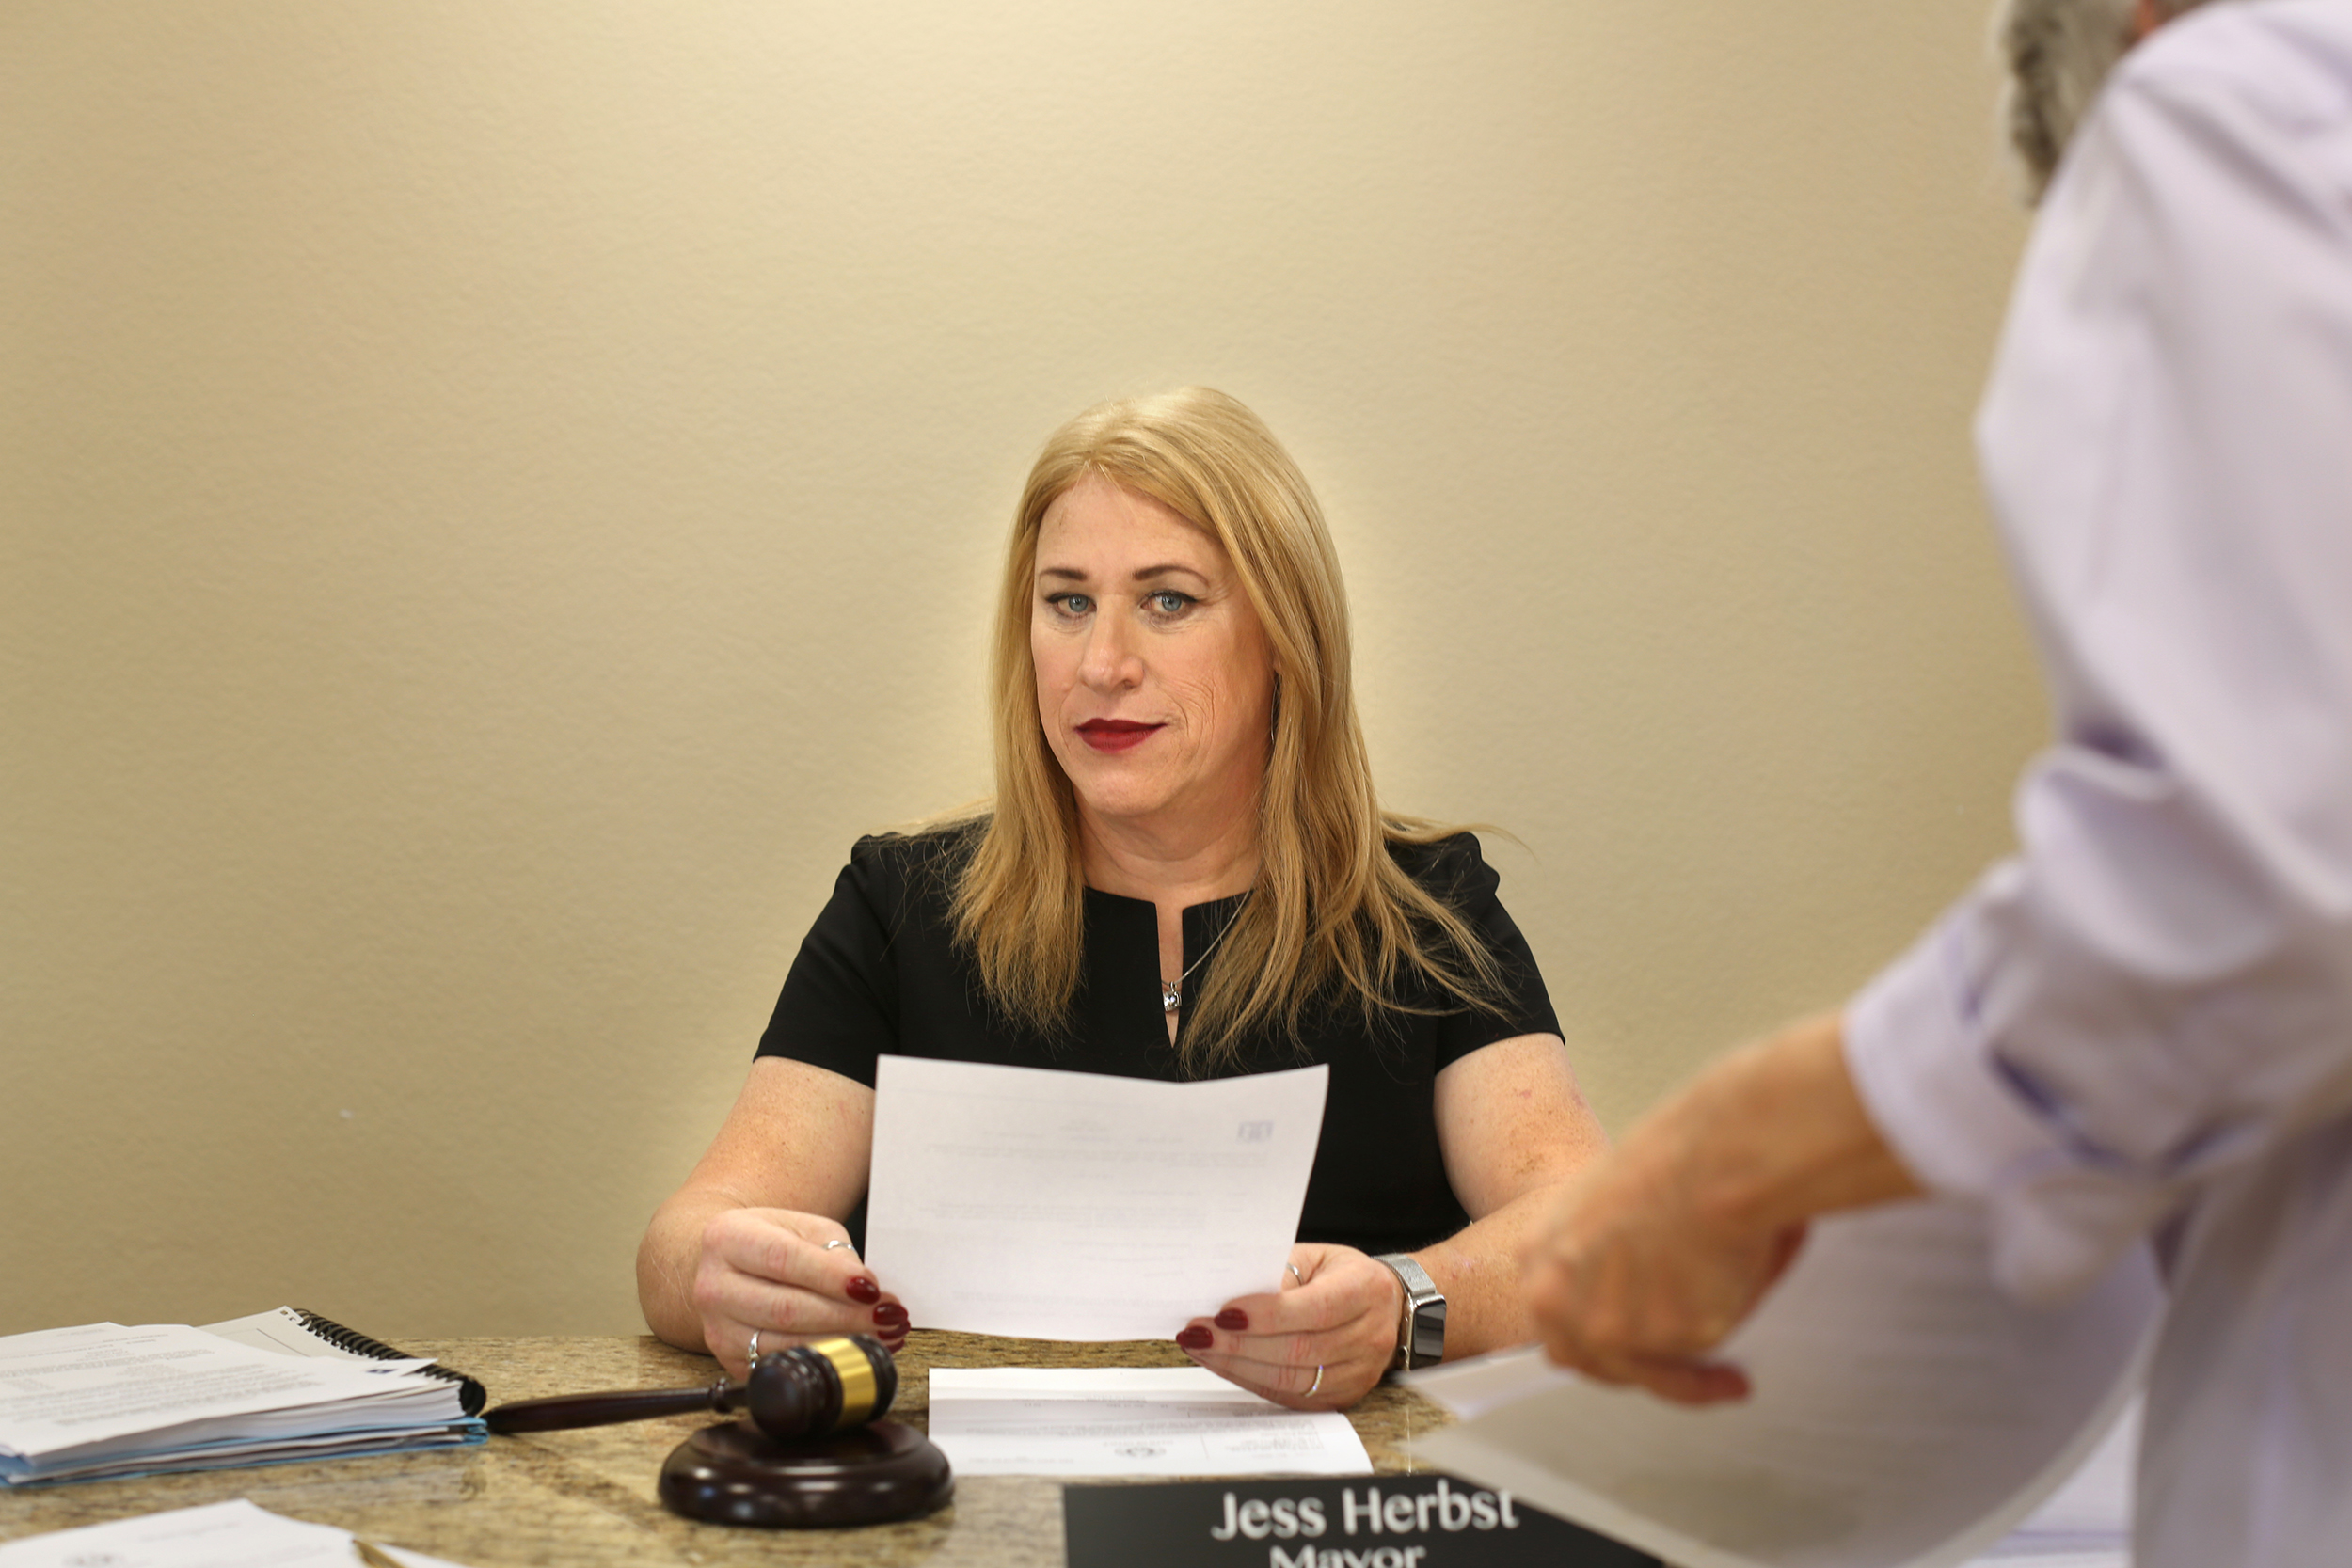 Jess Herbst, first openly transgender mayor in Texas, is voted out